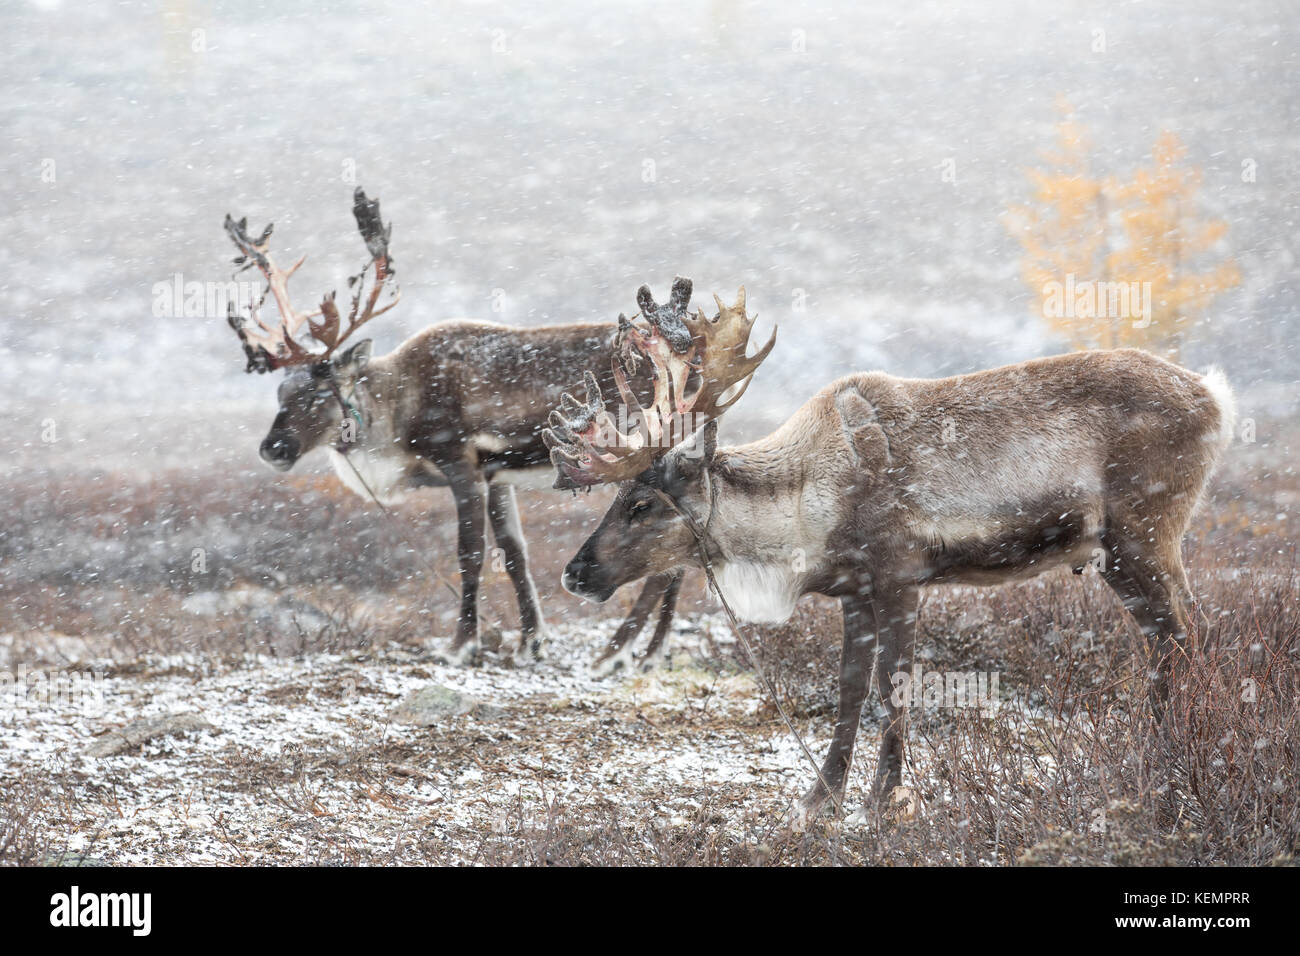 Two reindeer in a heavy snow storm. Khuvsgol, Mongolia. - Stock Image